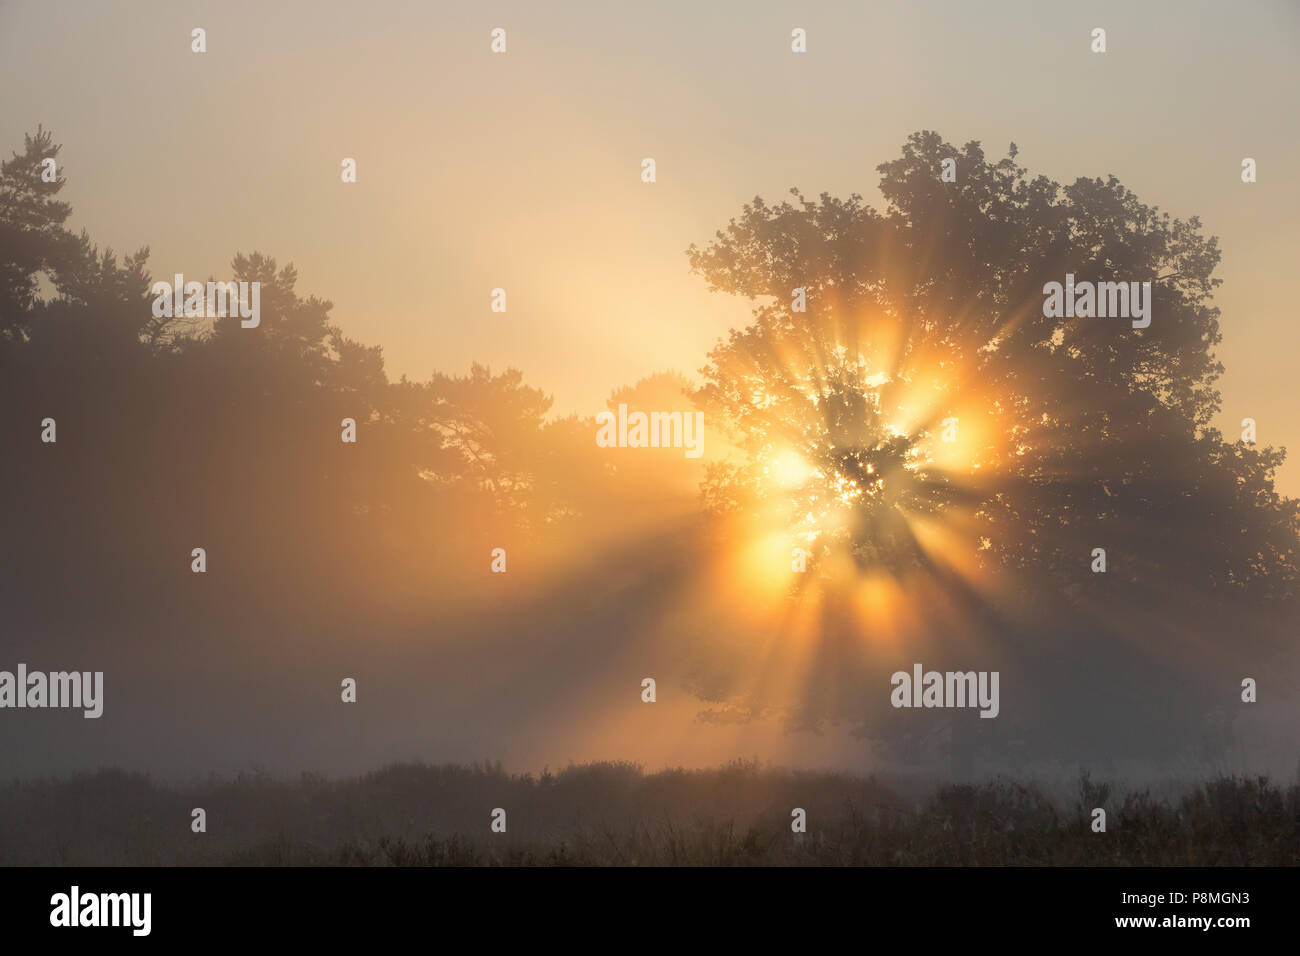 Crepuscular rays radiating from a tree at sunrise - Stock Image